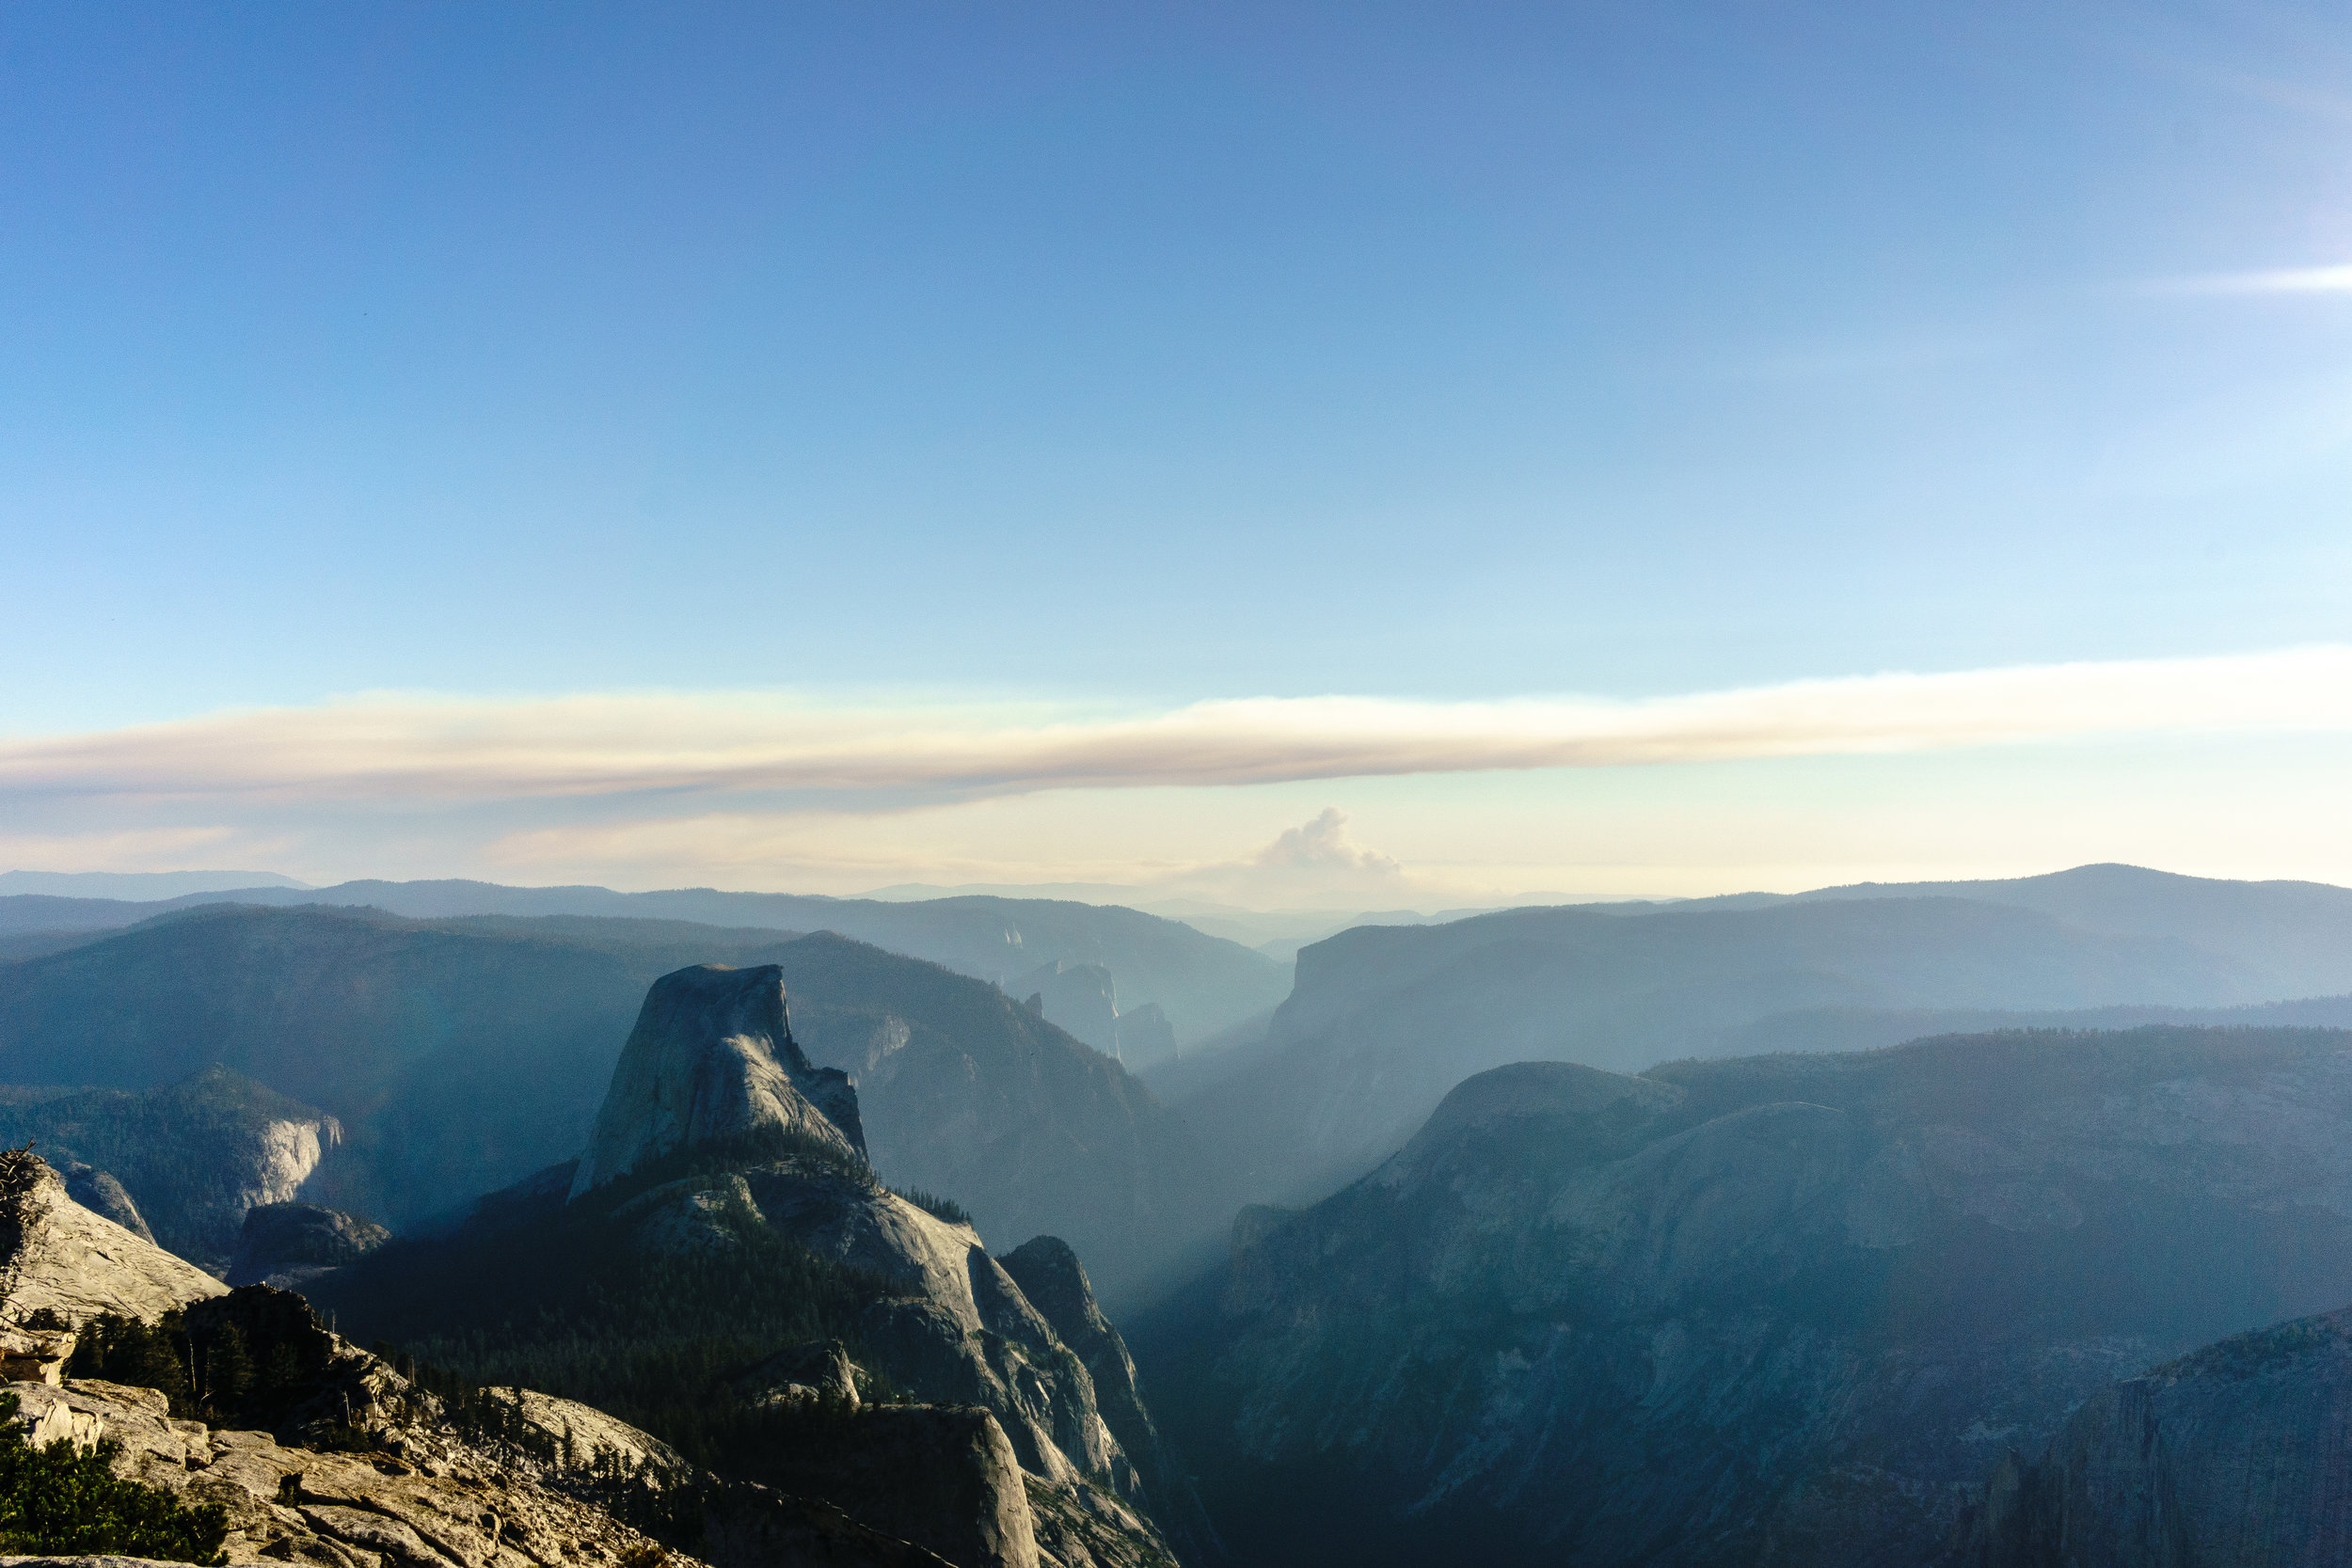 Half Dome as seen from Cloud's Rest